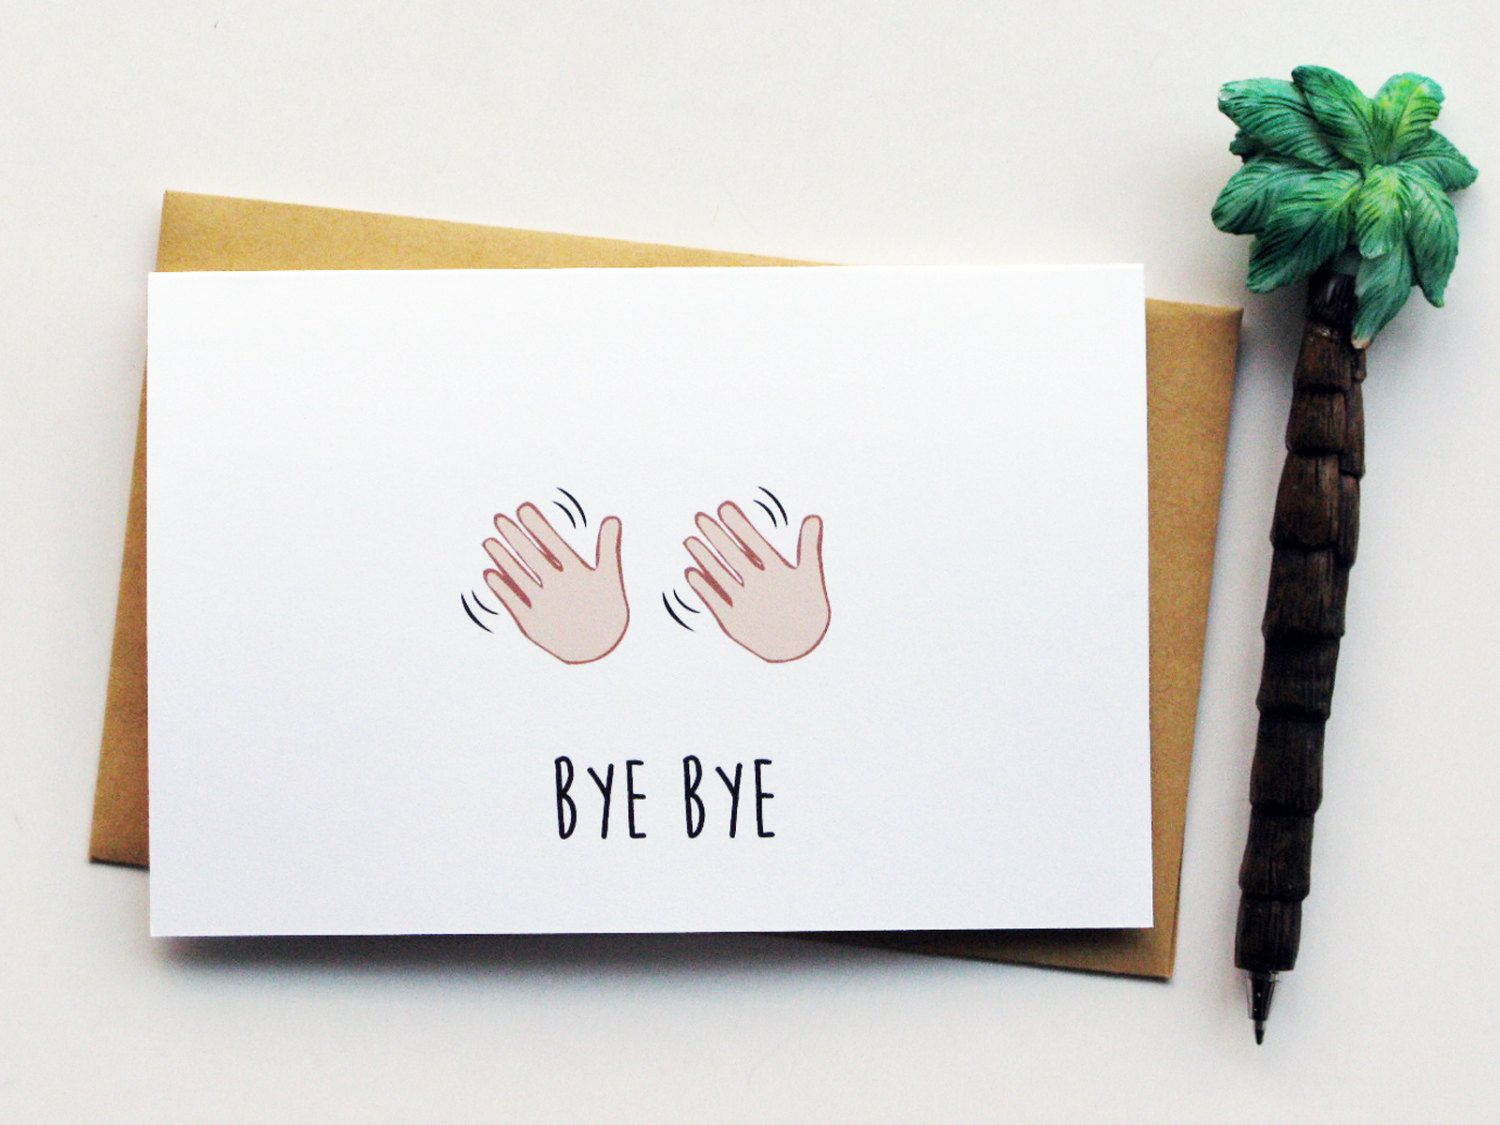 We will miss you card perfect for the office going away party we will miss you card perfect for the office going away party hand drawn greeting cards pinterest cards card ideas and gift kristyandbryce Image collections